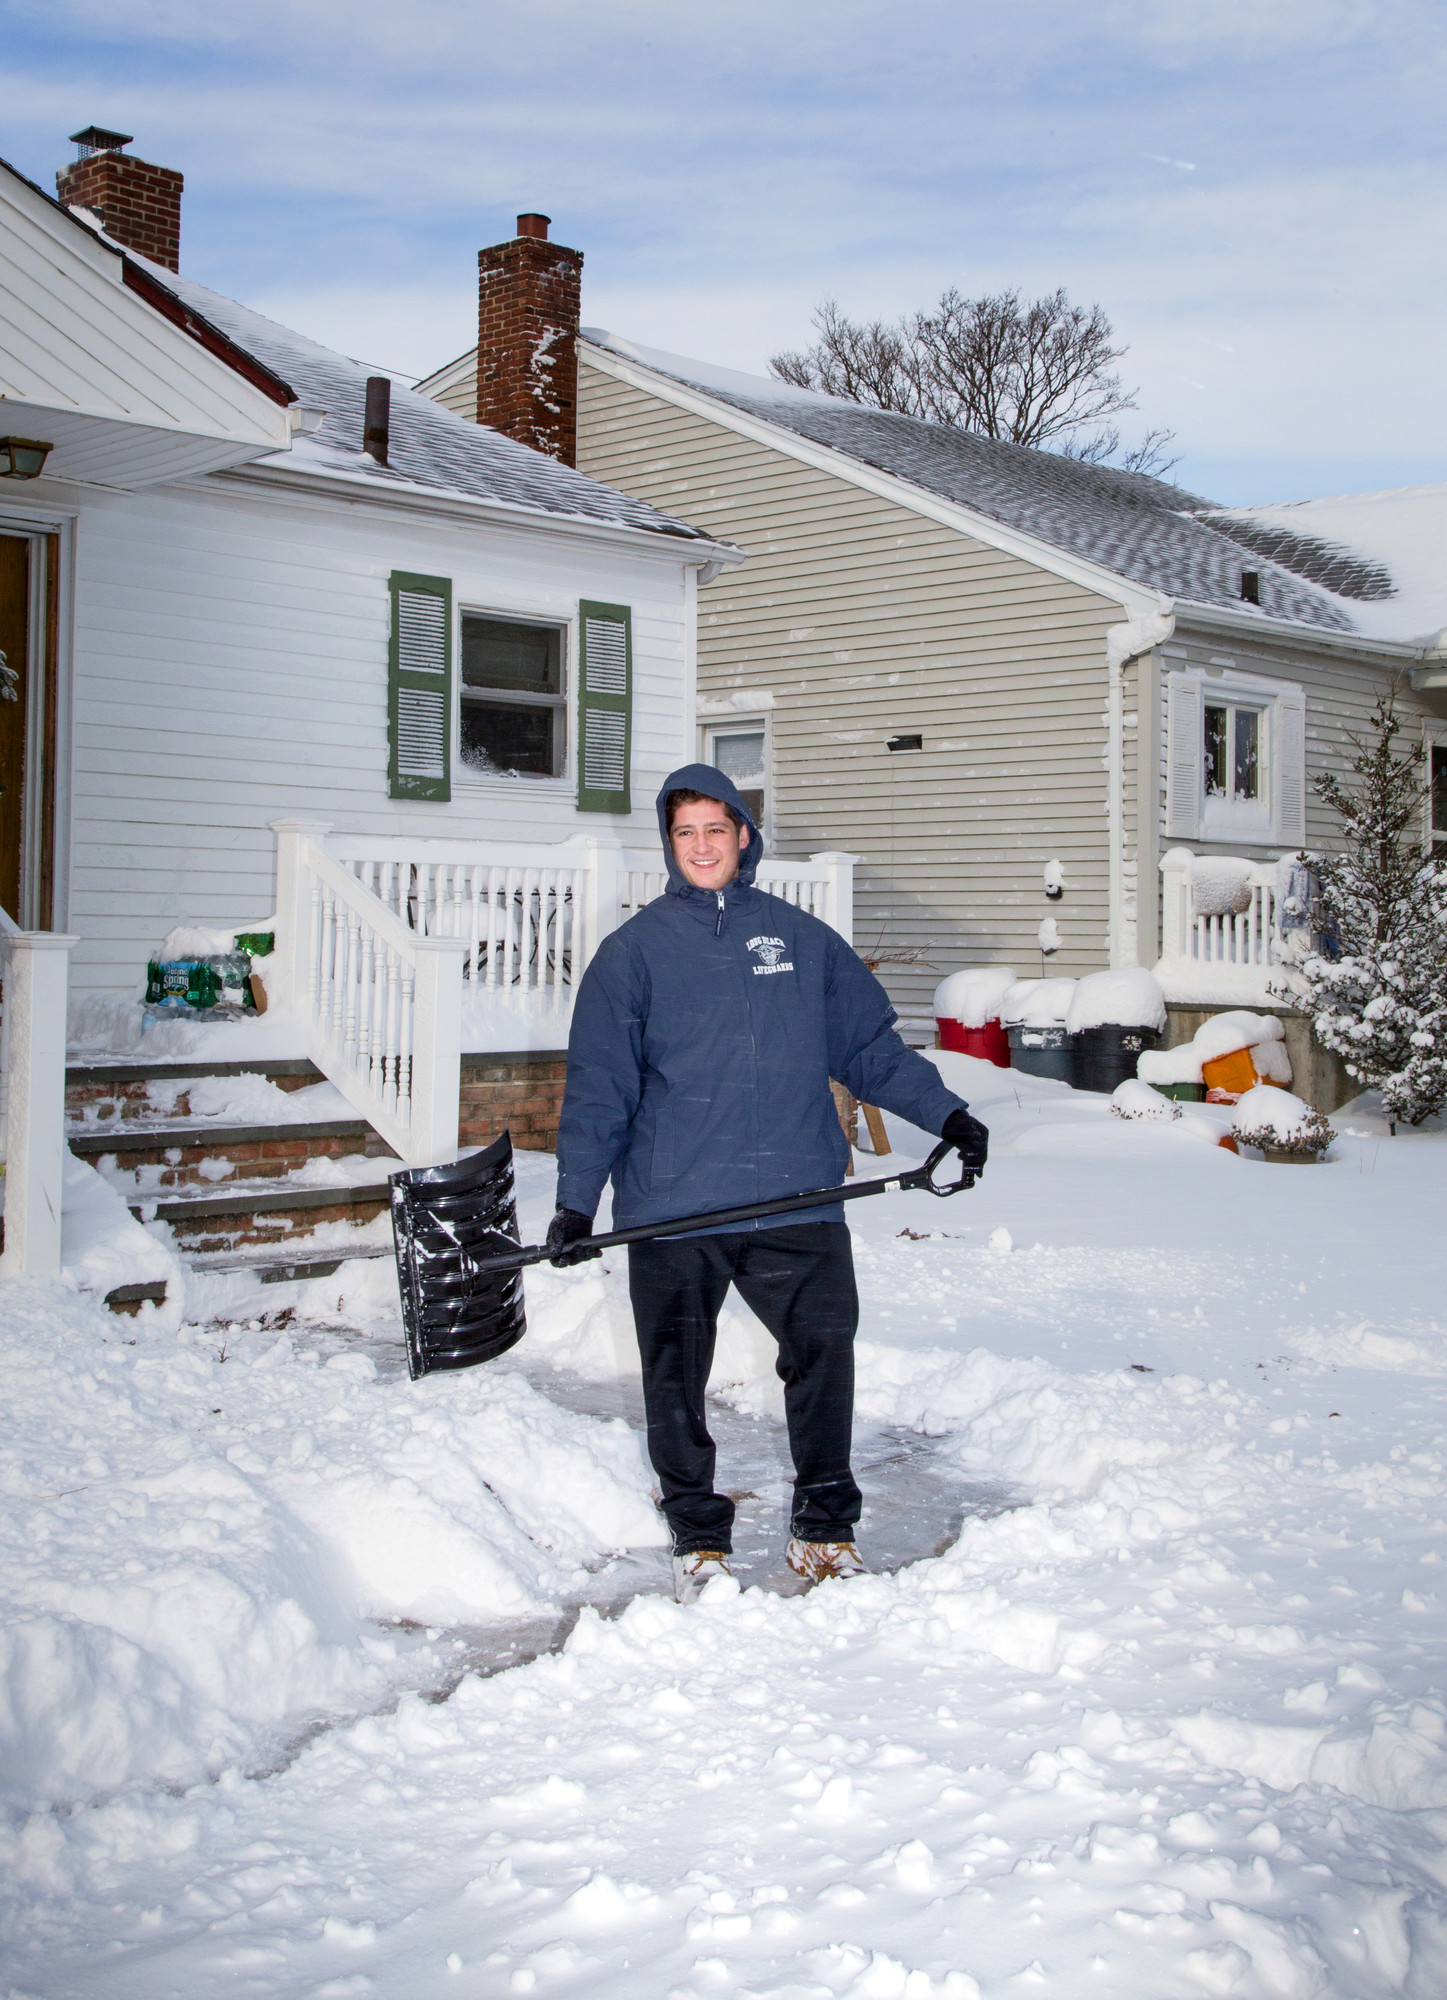 Lifeguard Rob Delury shoveled out his home on Harmon Street.